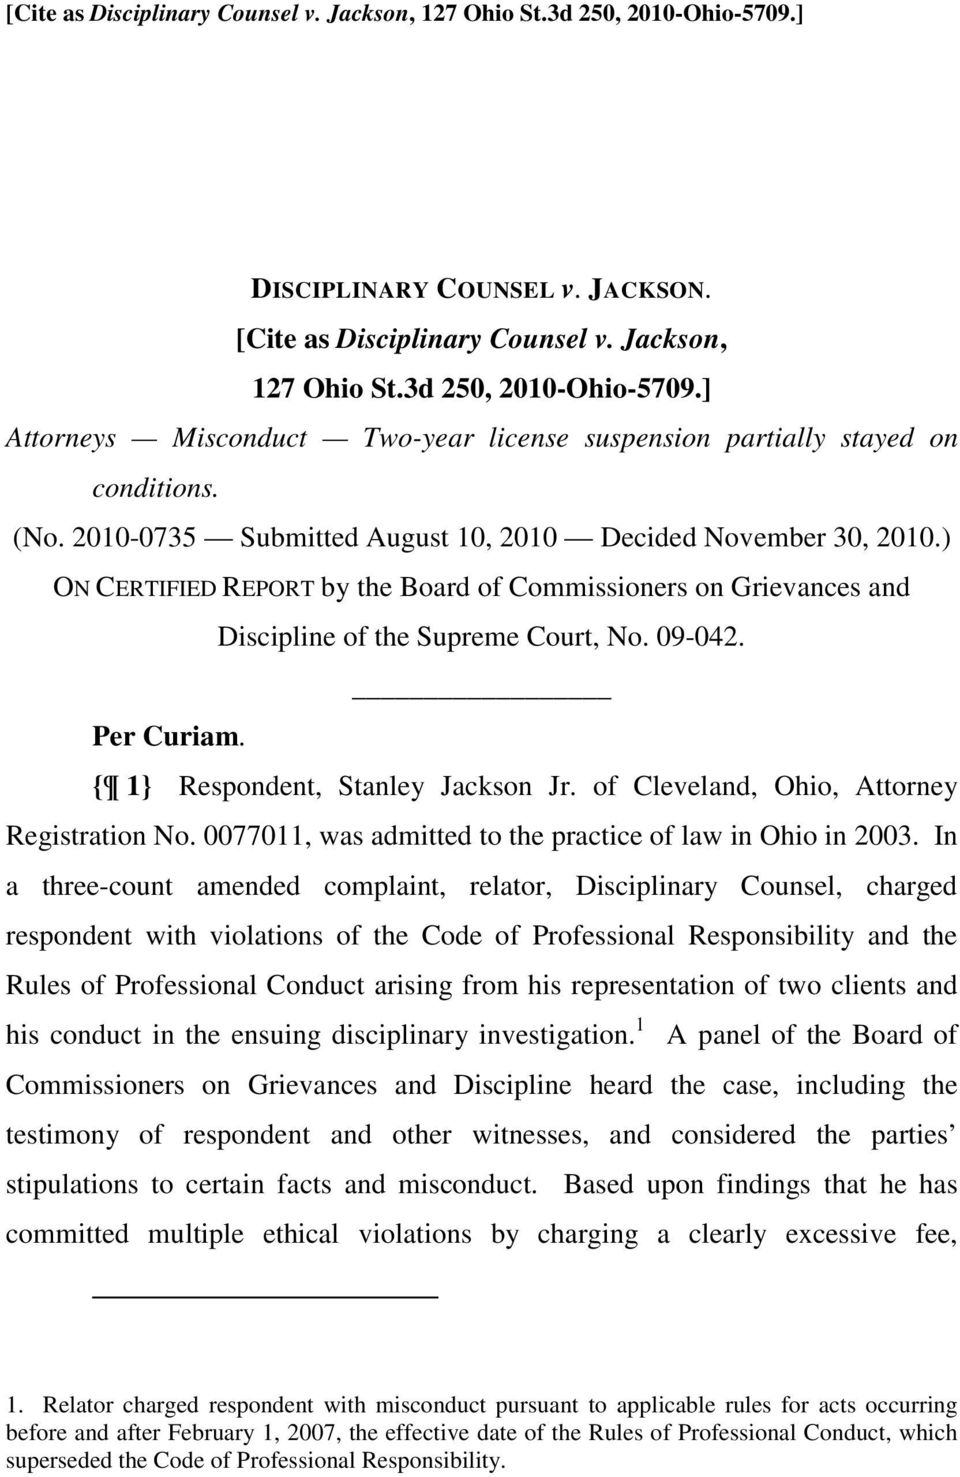 { 1} Respondent, Stanley Jackson Jr. of Cleveland, Ohio, Attorney Registration No. 0077011, was admitted to the practice of law in Ohio in 2003.